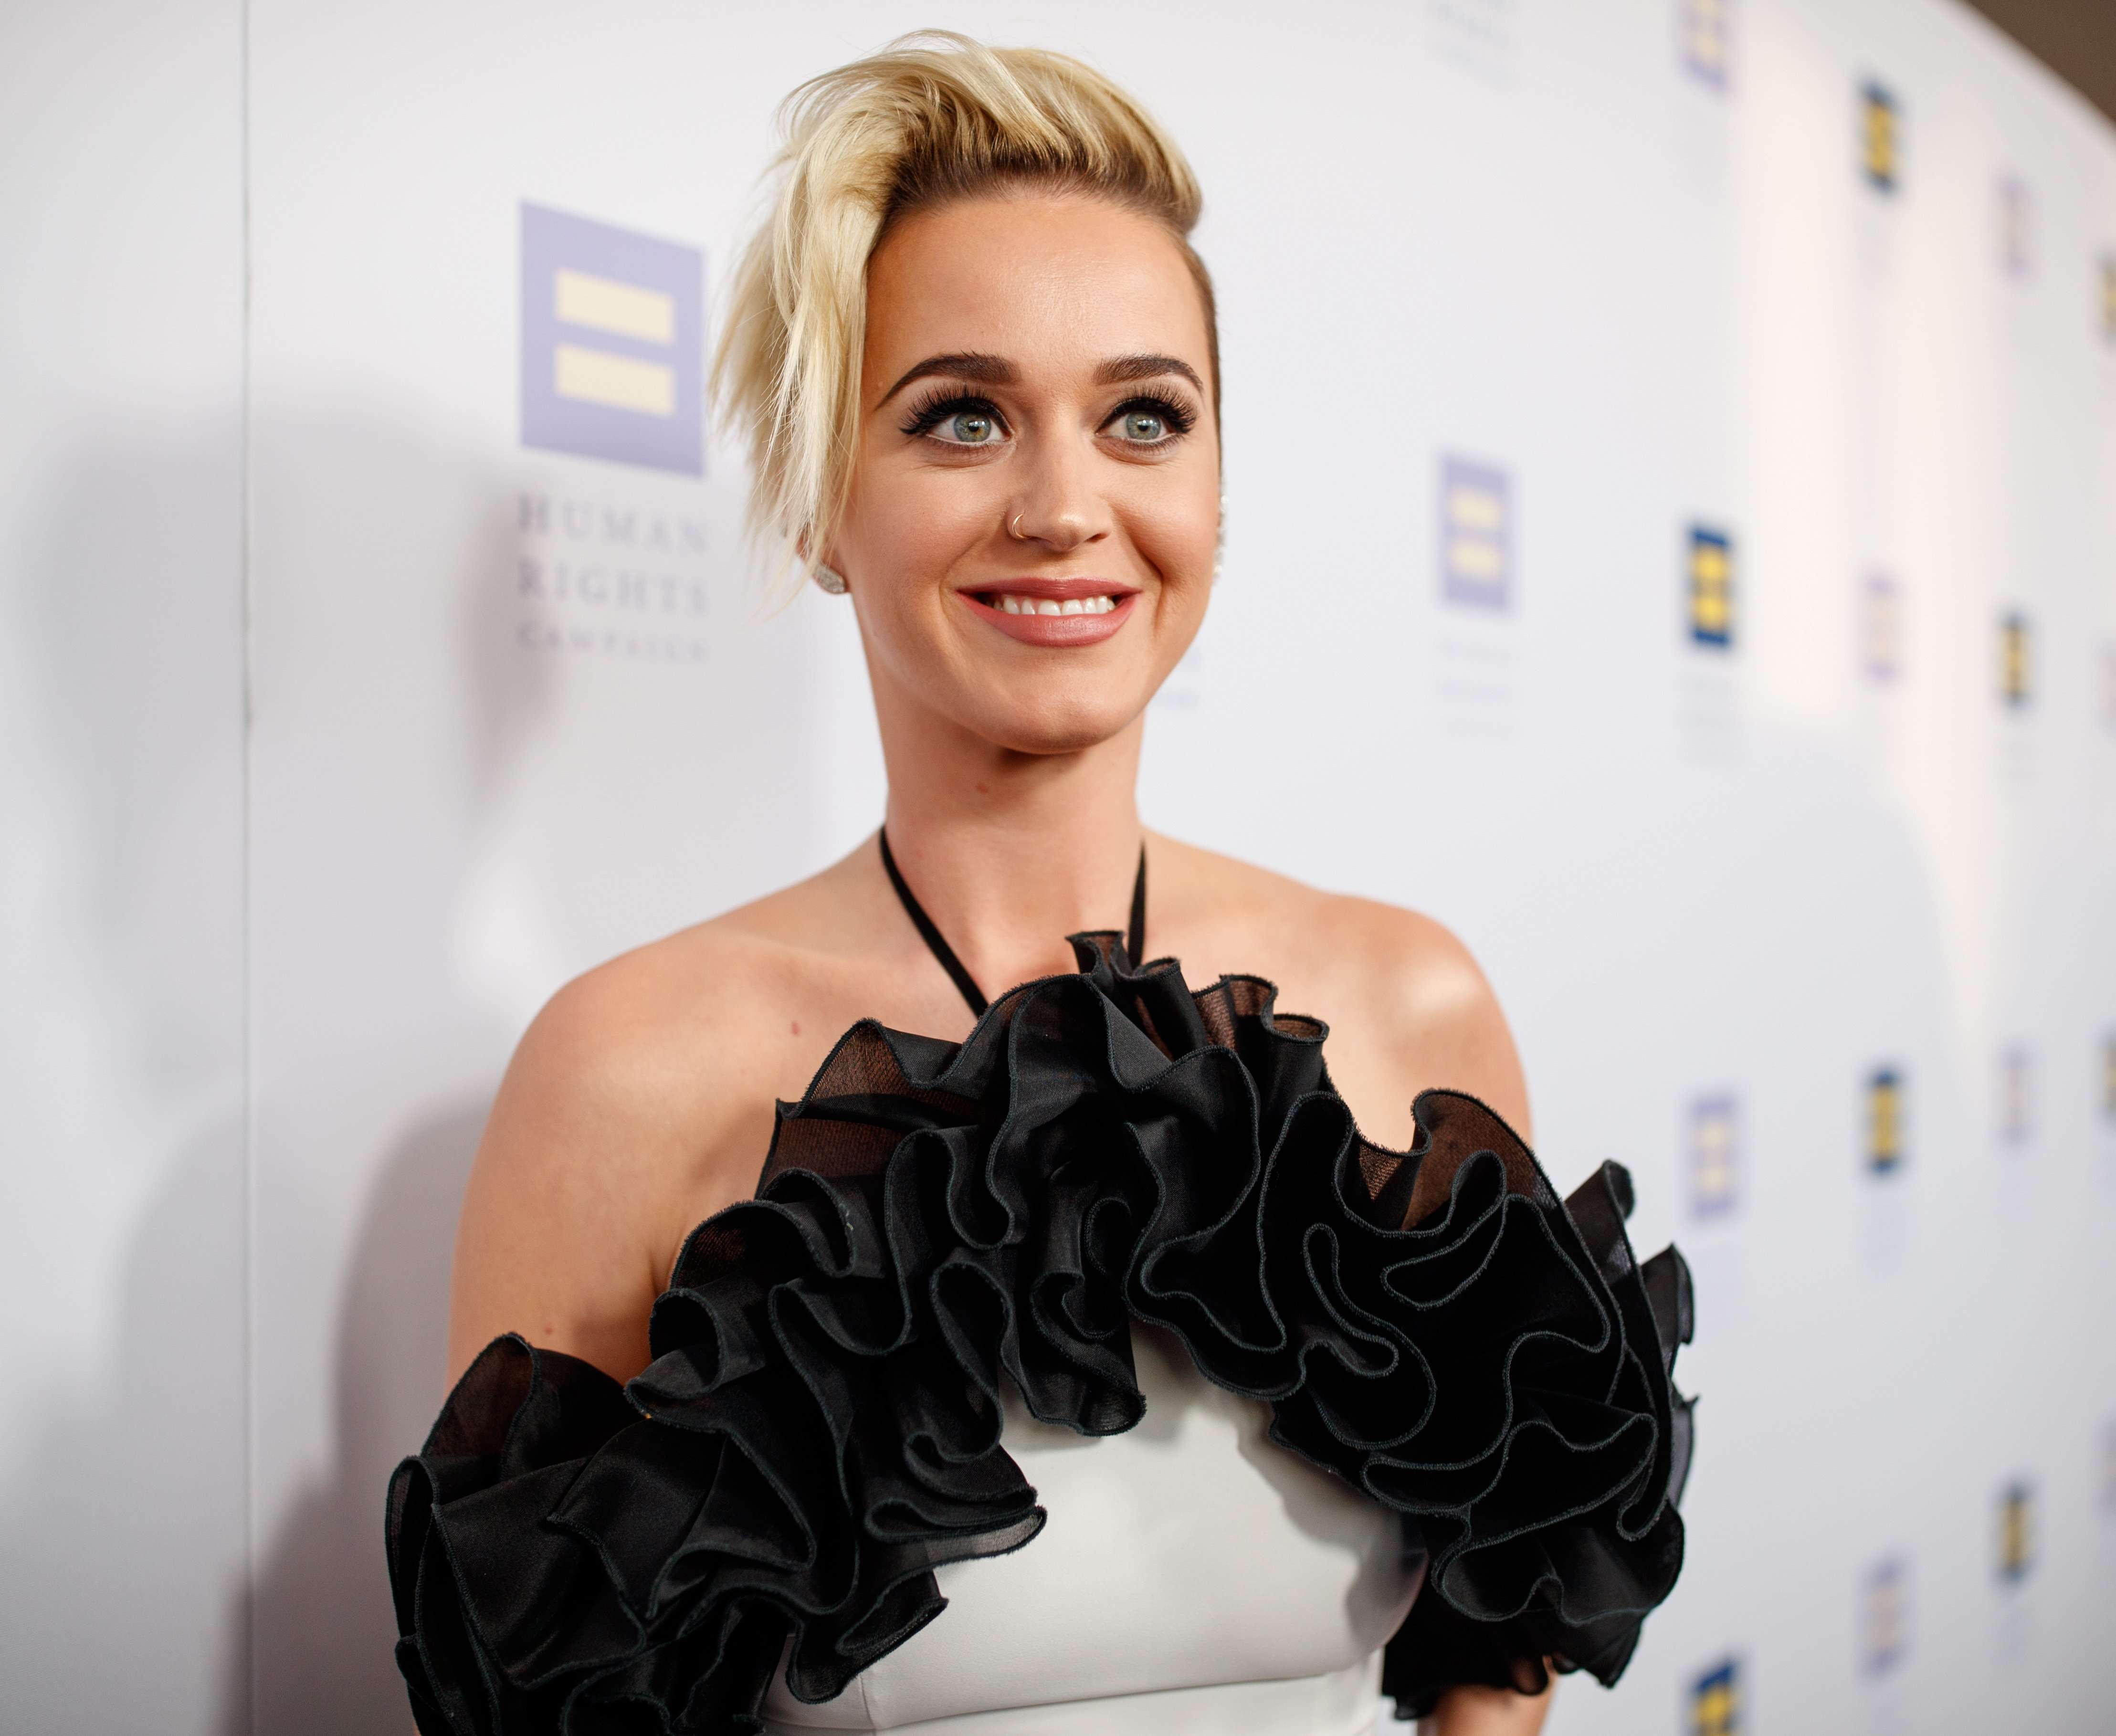 Katy Perry during the 2017 Human Rights Gala. | Photo: Getty Images